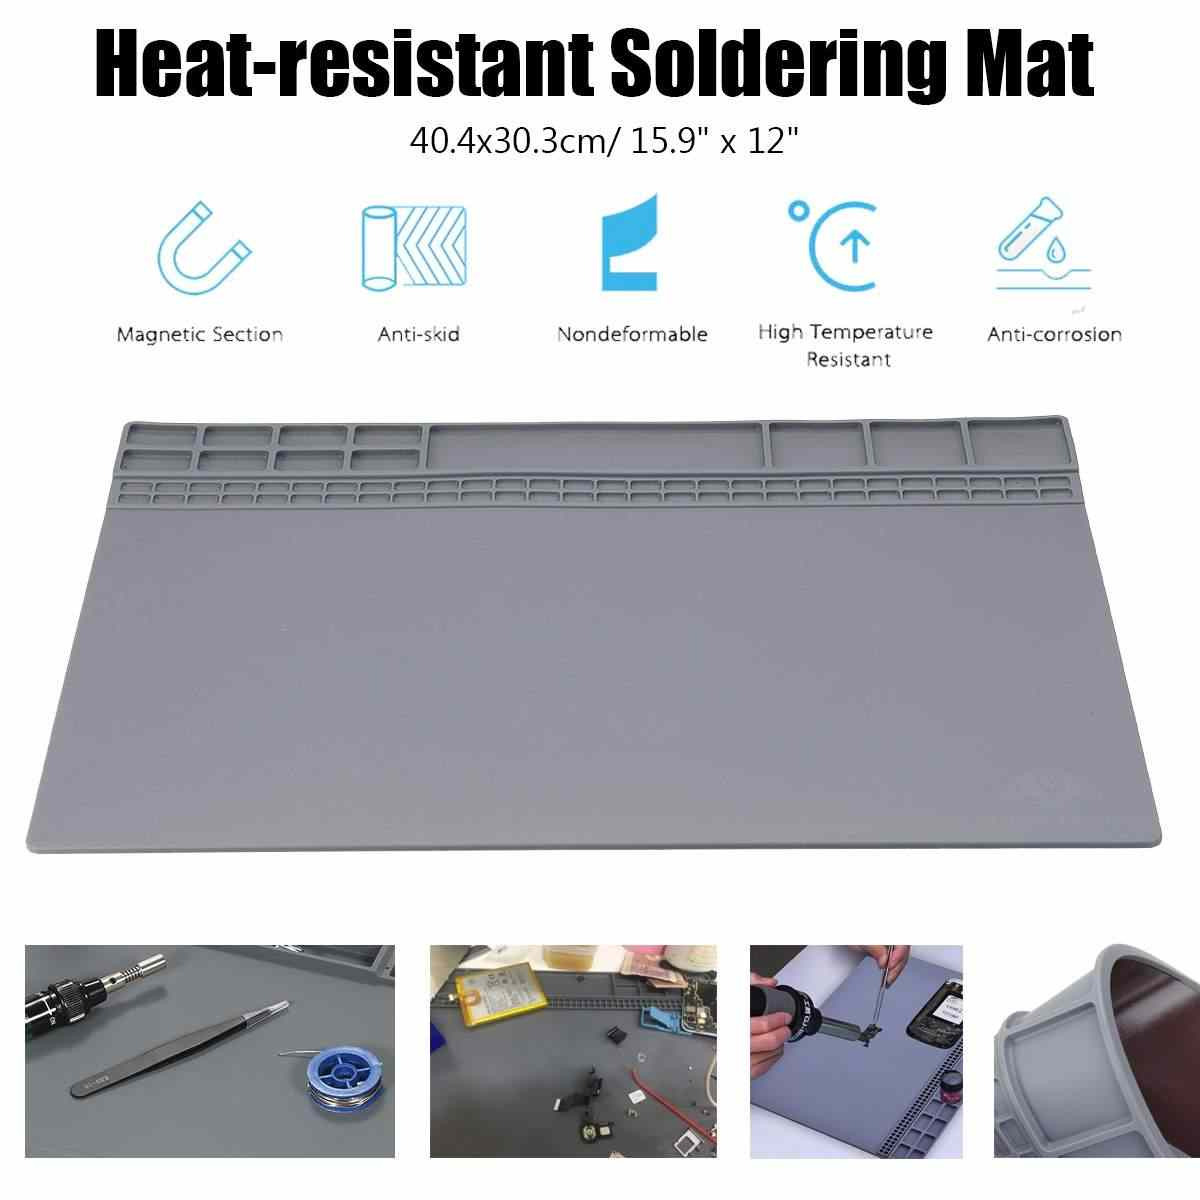 Insulation Pad Heat Resistant Soldering Station Silicon Soldering Mat Work Pad Desk Platform Soldering Repair Station